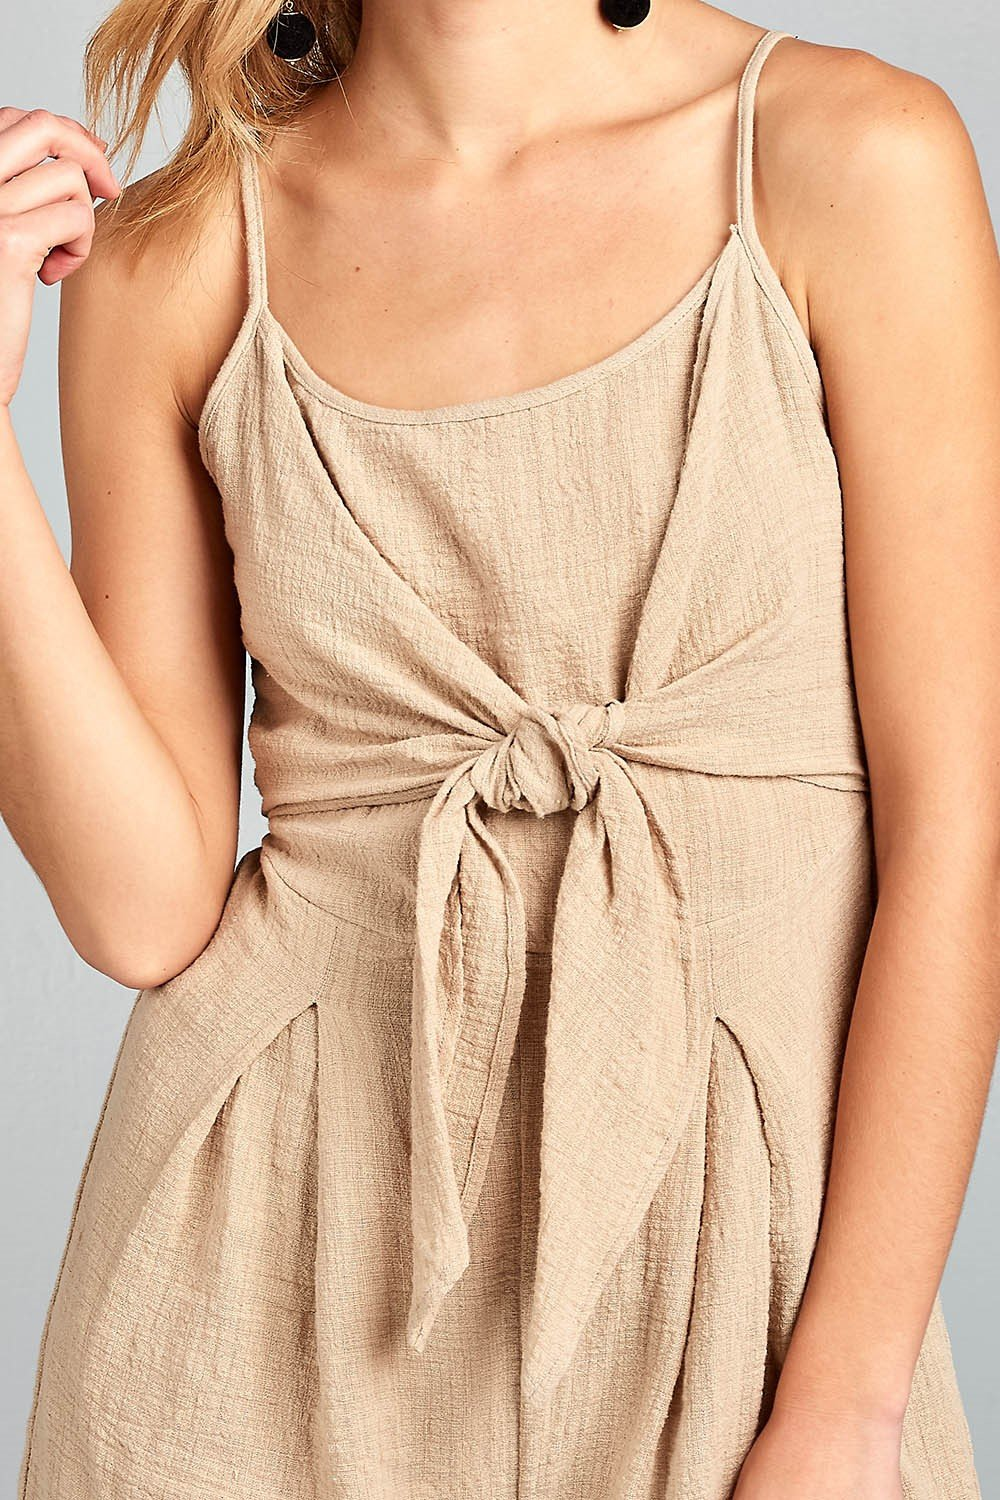 Elowen- 100% Cotton Romper w/Front Tie and Open Back